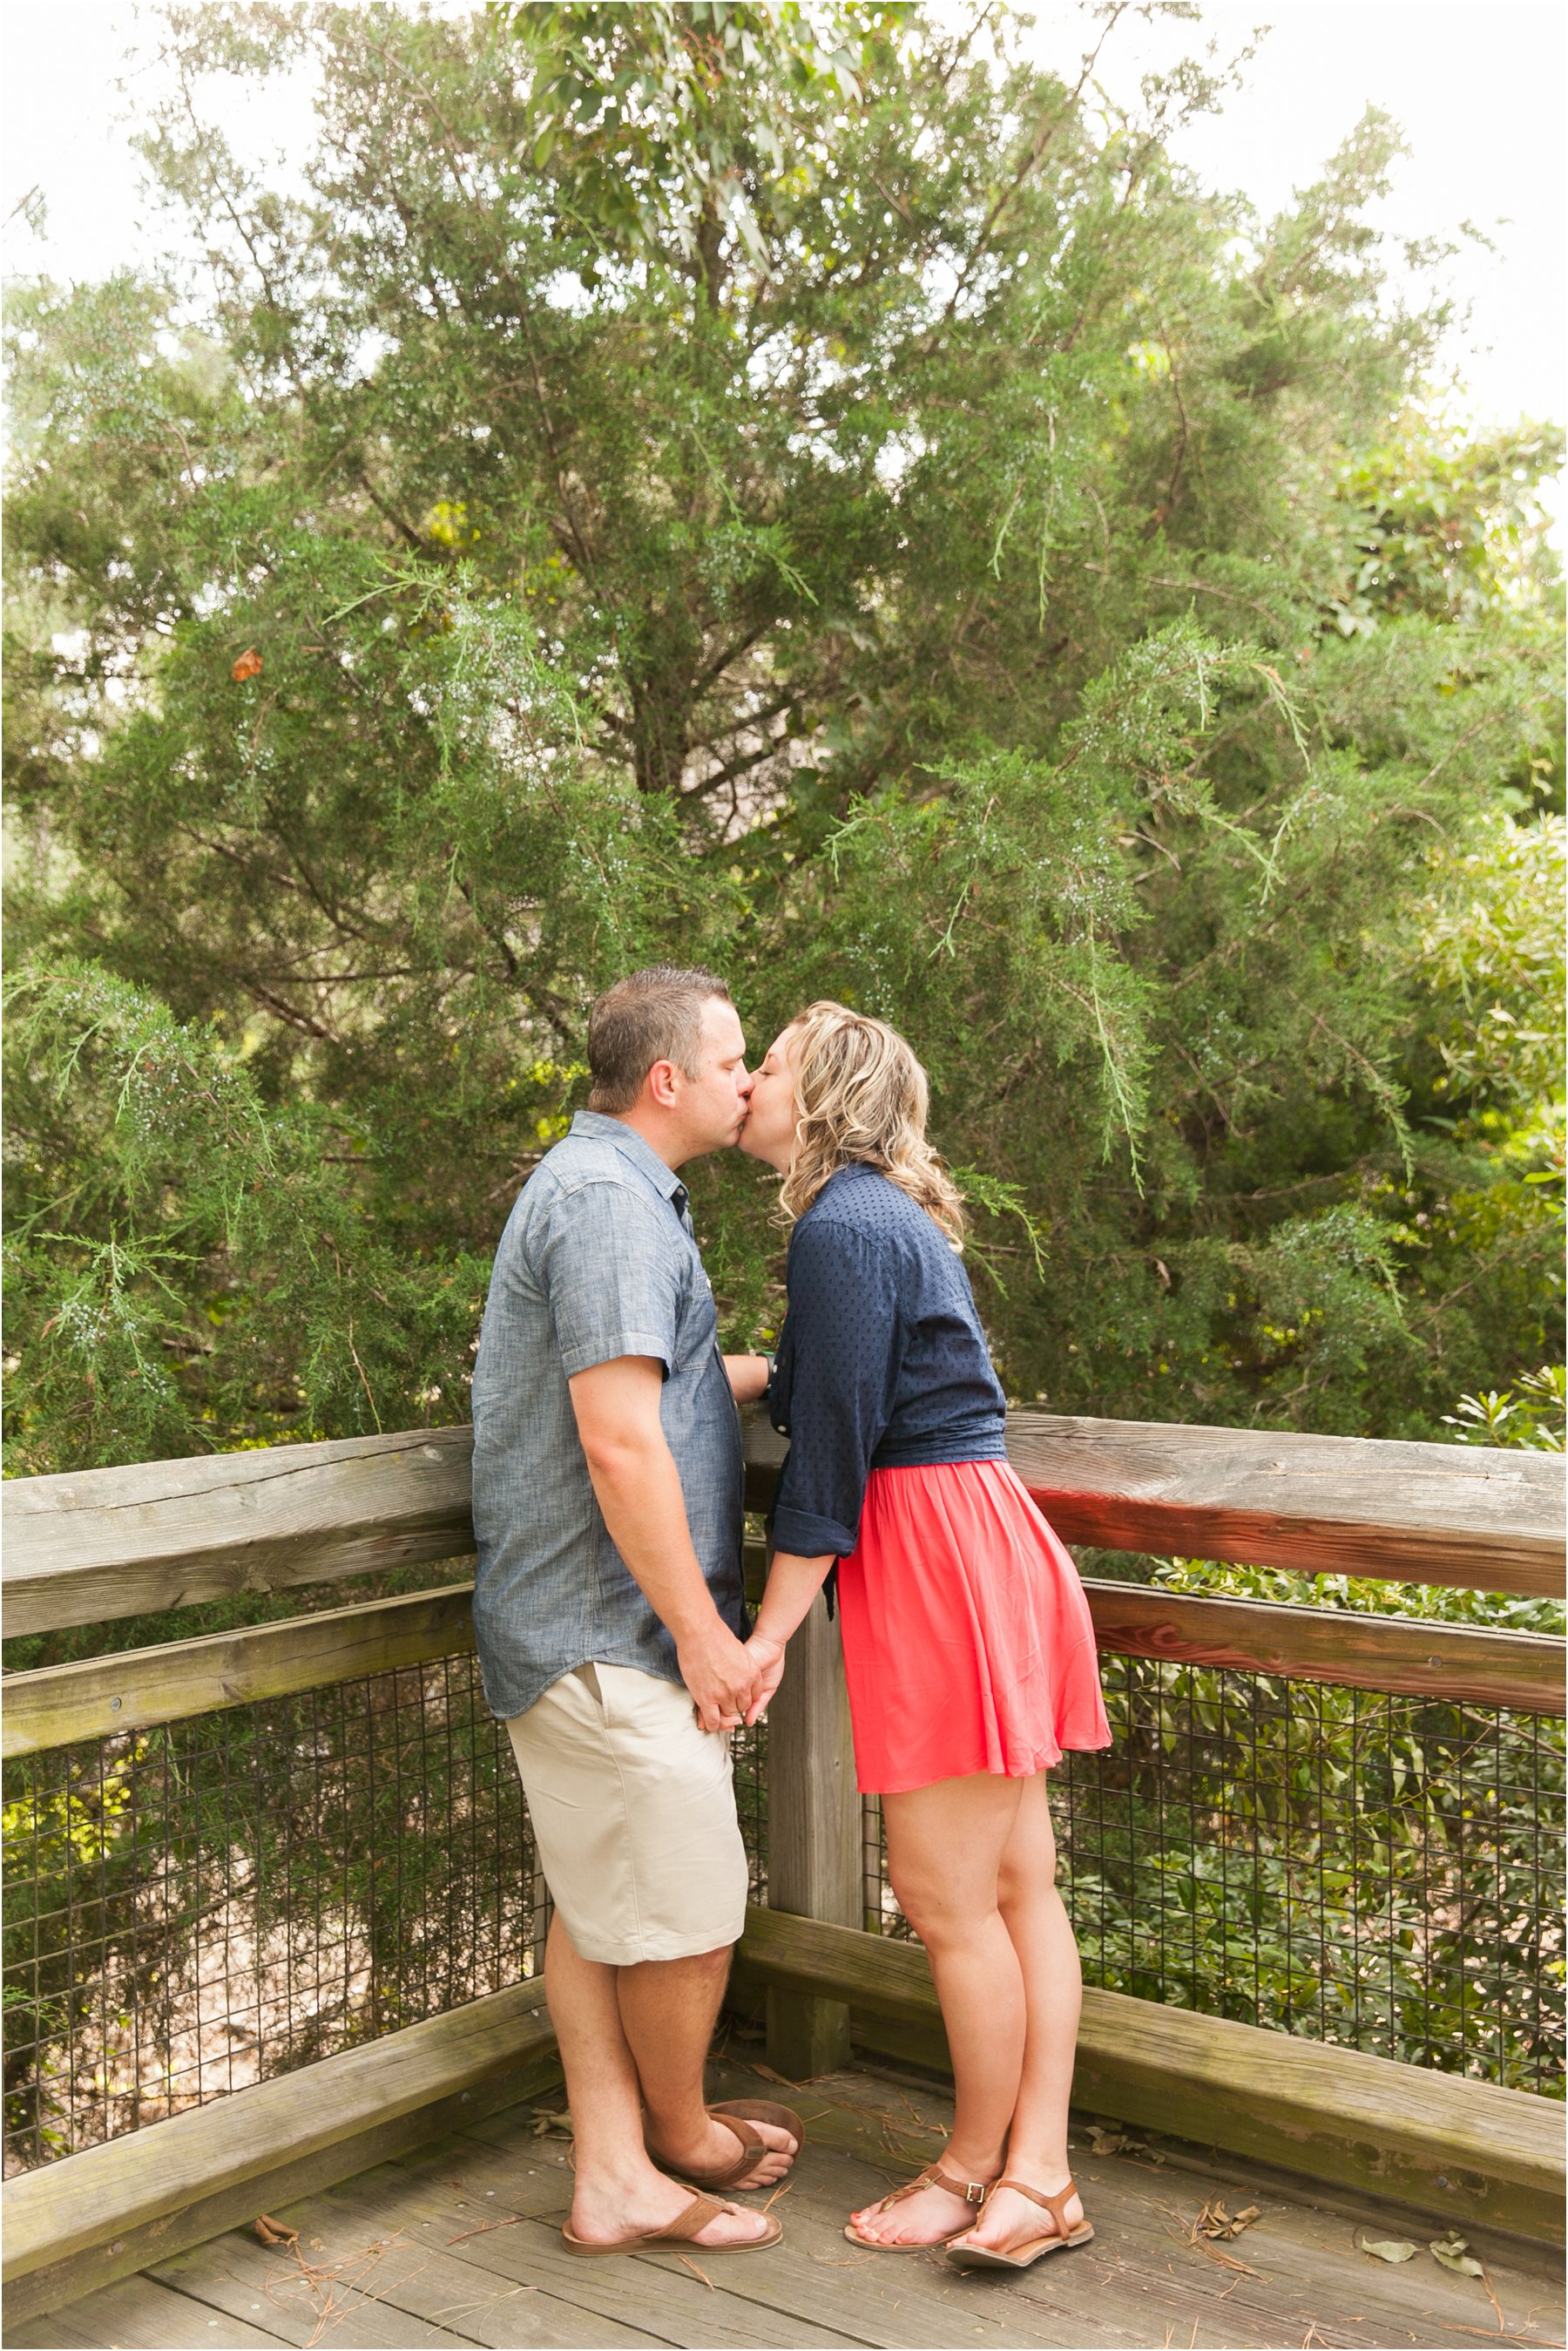 Nofolk_Zoo_engagement_photography_virginia_Jessica_ryan_photography_0140